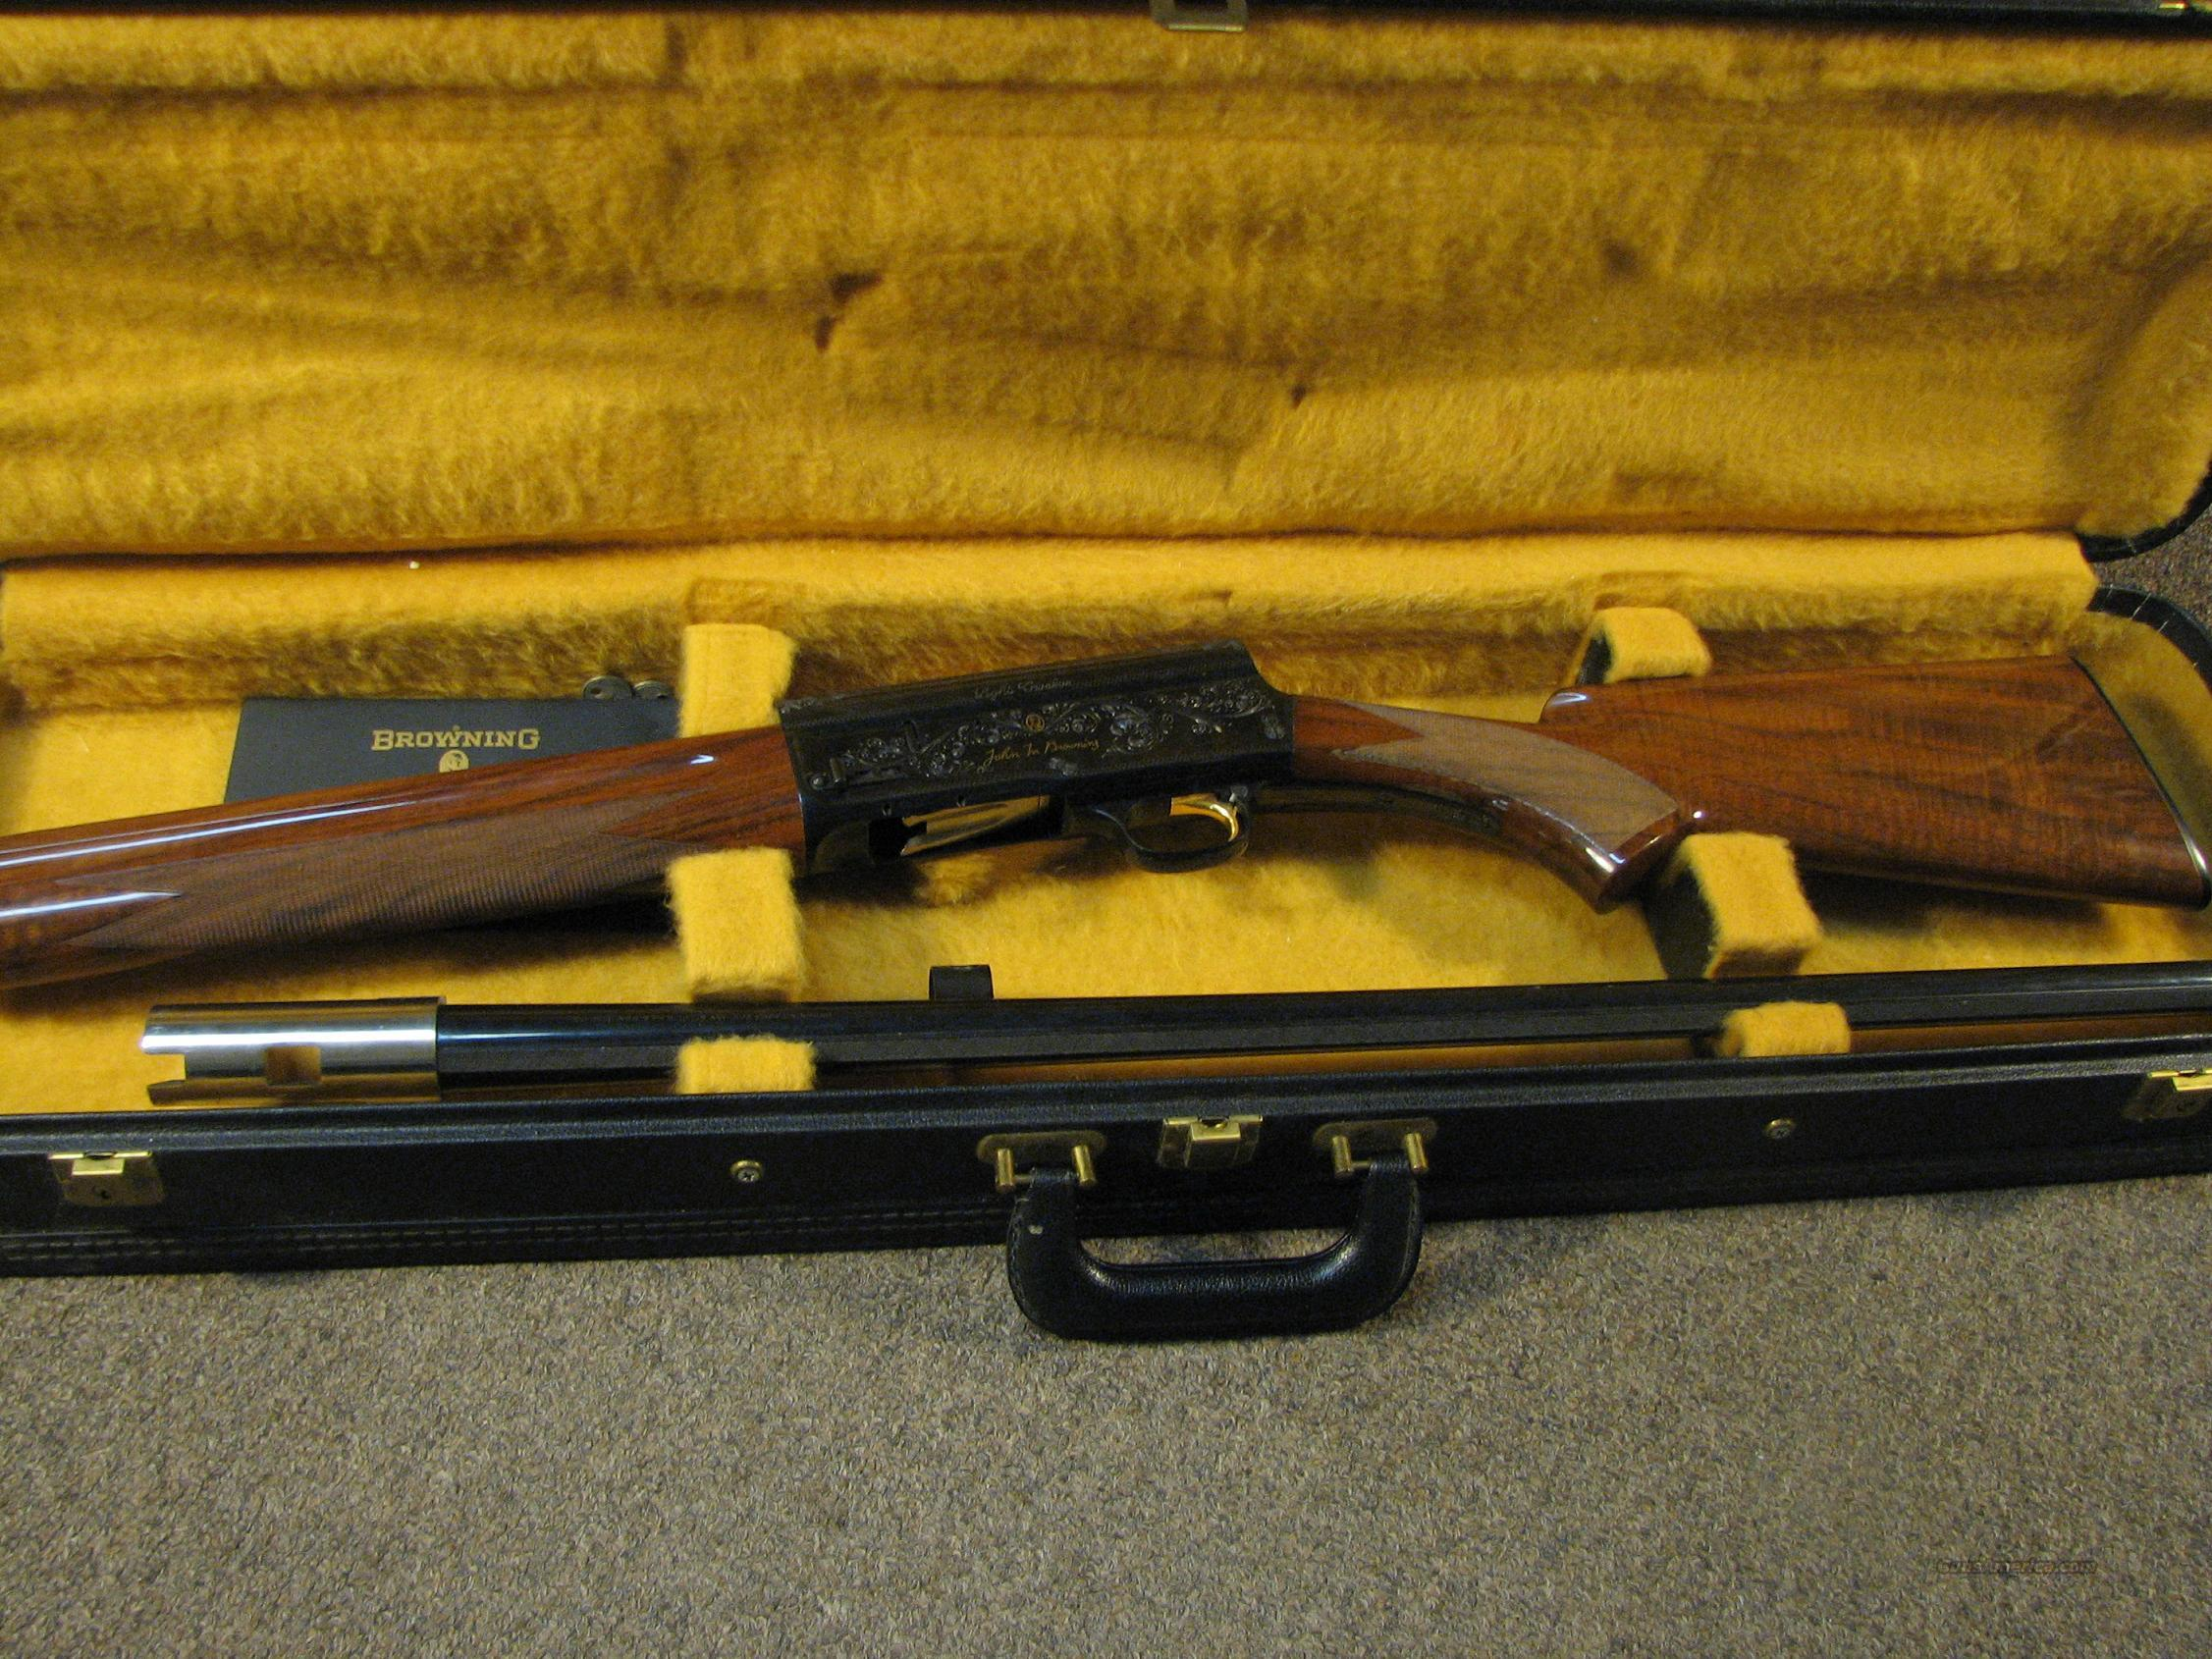 BROWNING A-5 BELGIAN LIGHT TWELVE 2 MILLIONTH EDITION IN CASE  Guns > Shotguns > Browning Shotguns > Autoloaders > Hunting